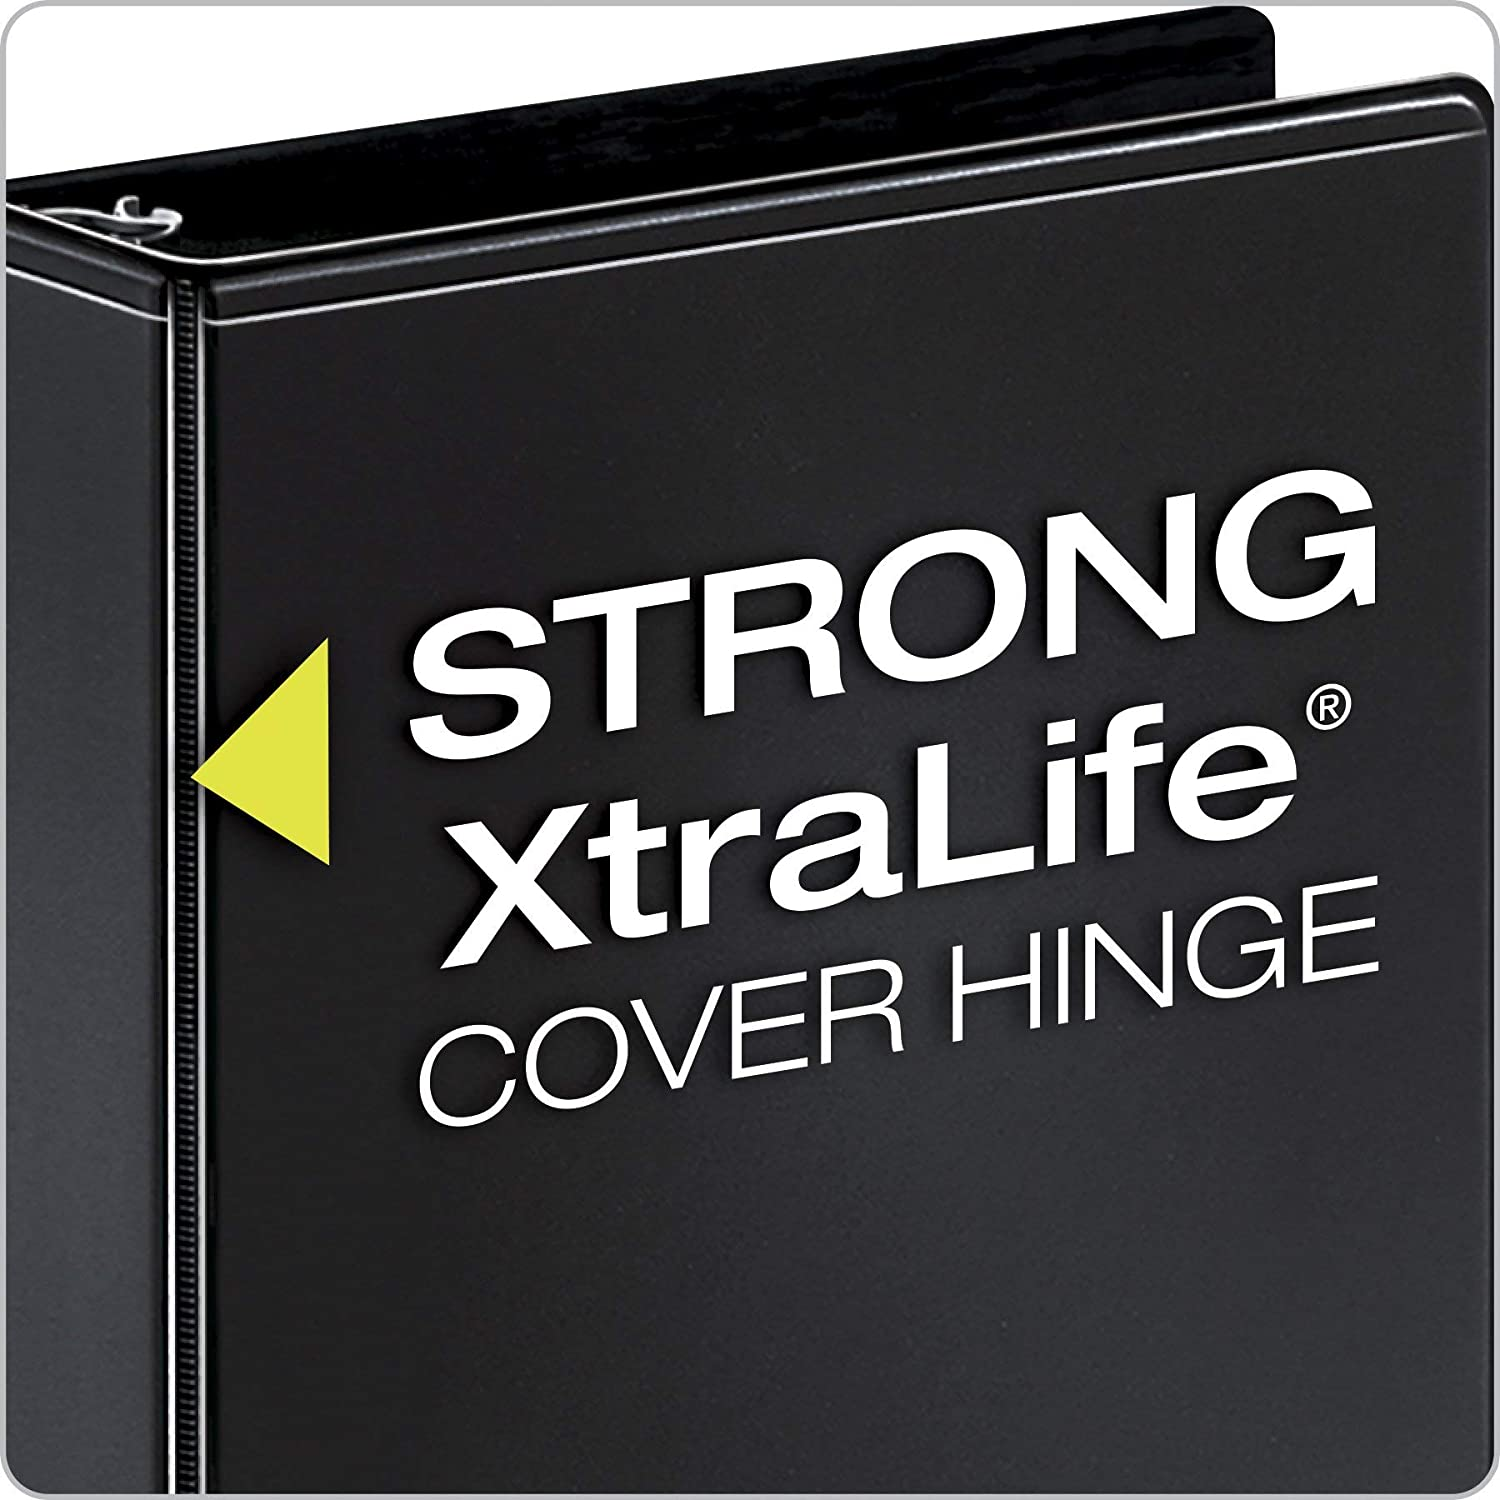 PVC-Free ClearVue Presentation Binder Non-Locking Slant-D Rings Renewed 17601 3 Nonstick 725-Sheet Capacity Black Cardinal Performer 3-Ring Binder